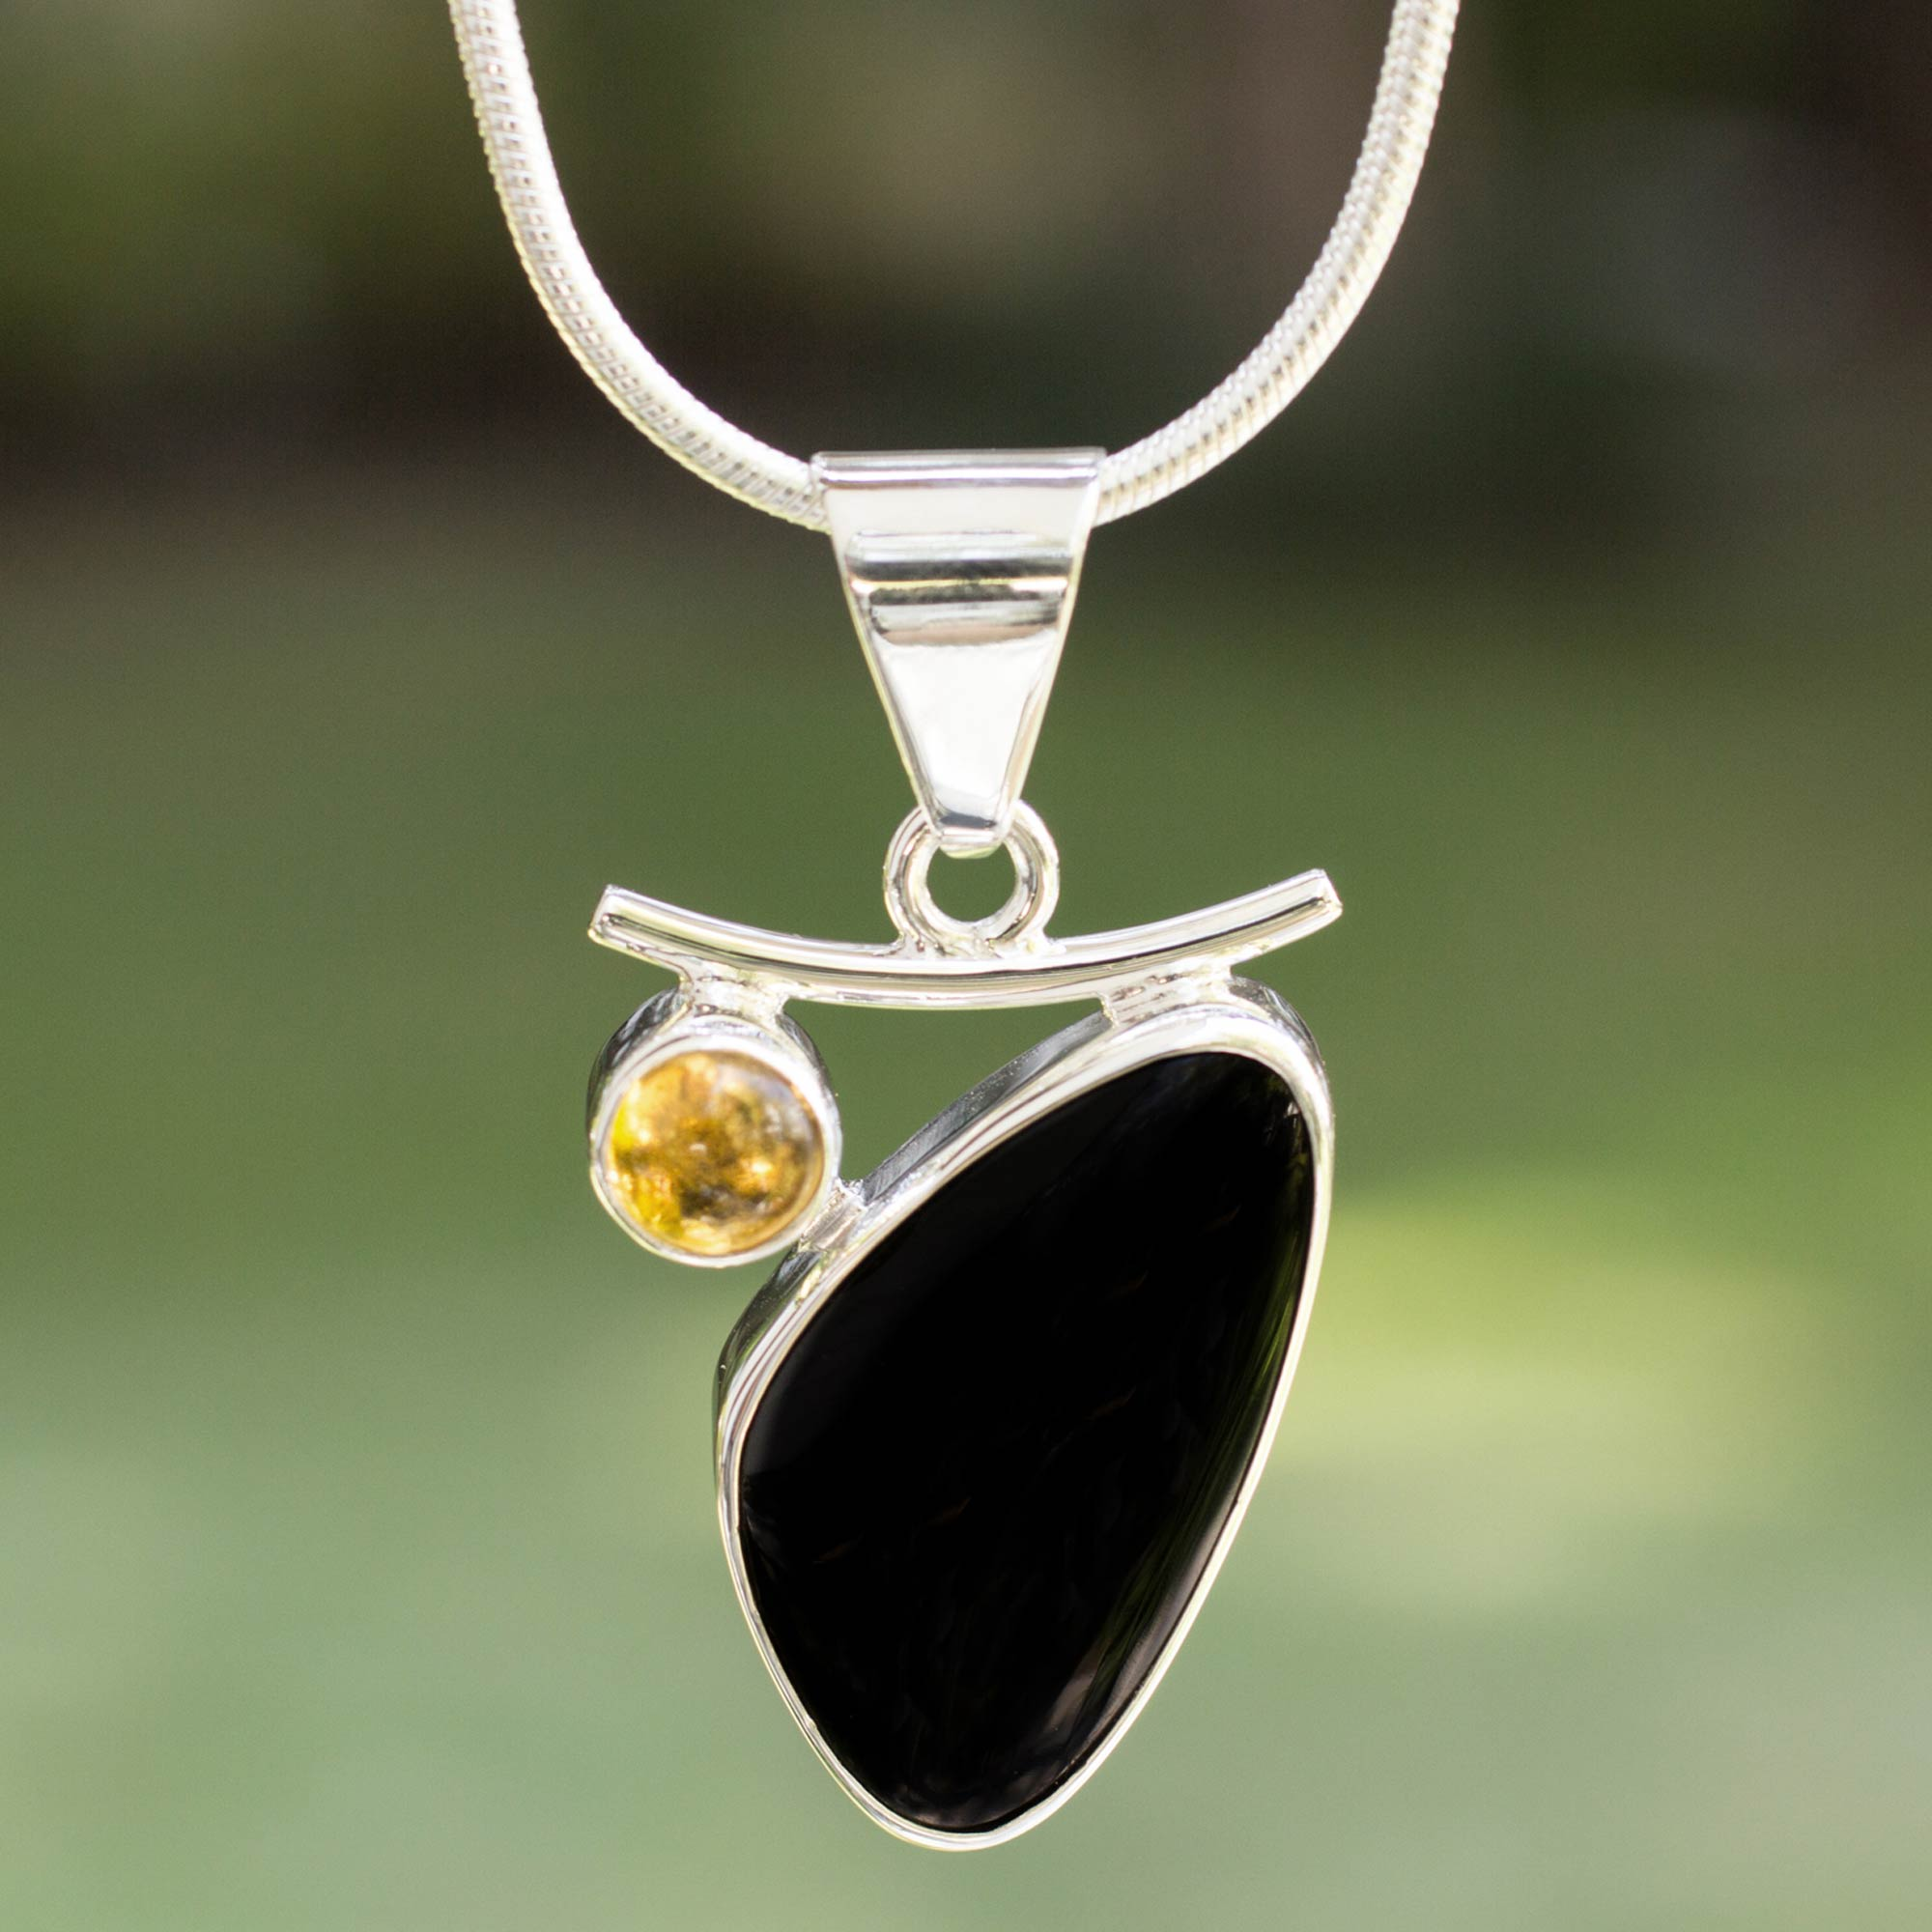 Modern Citrine and Obsidian Necklace from Mexico, 'Light Up the Night' Birthstone citrine